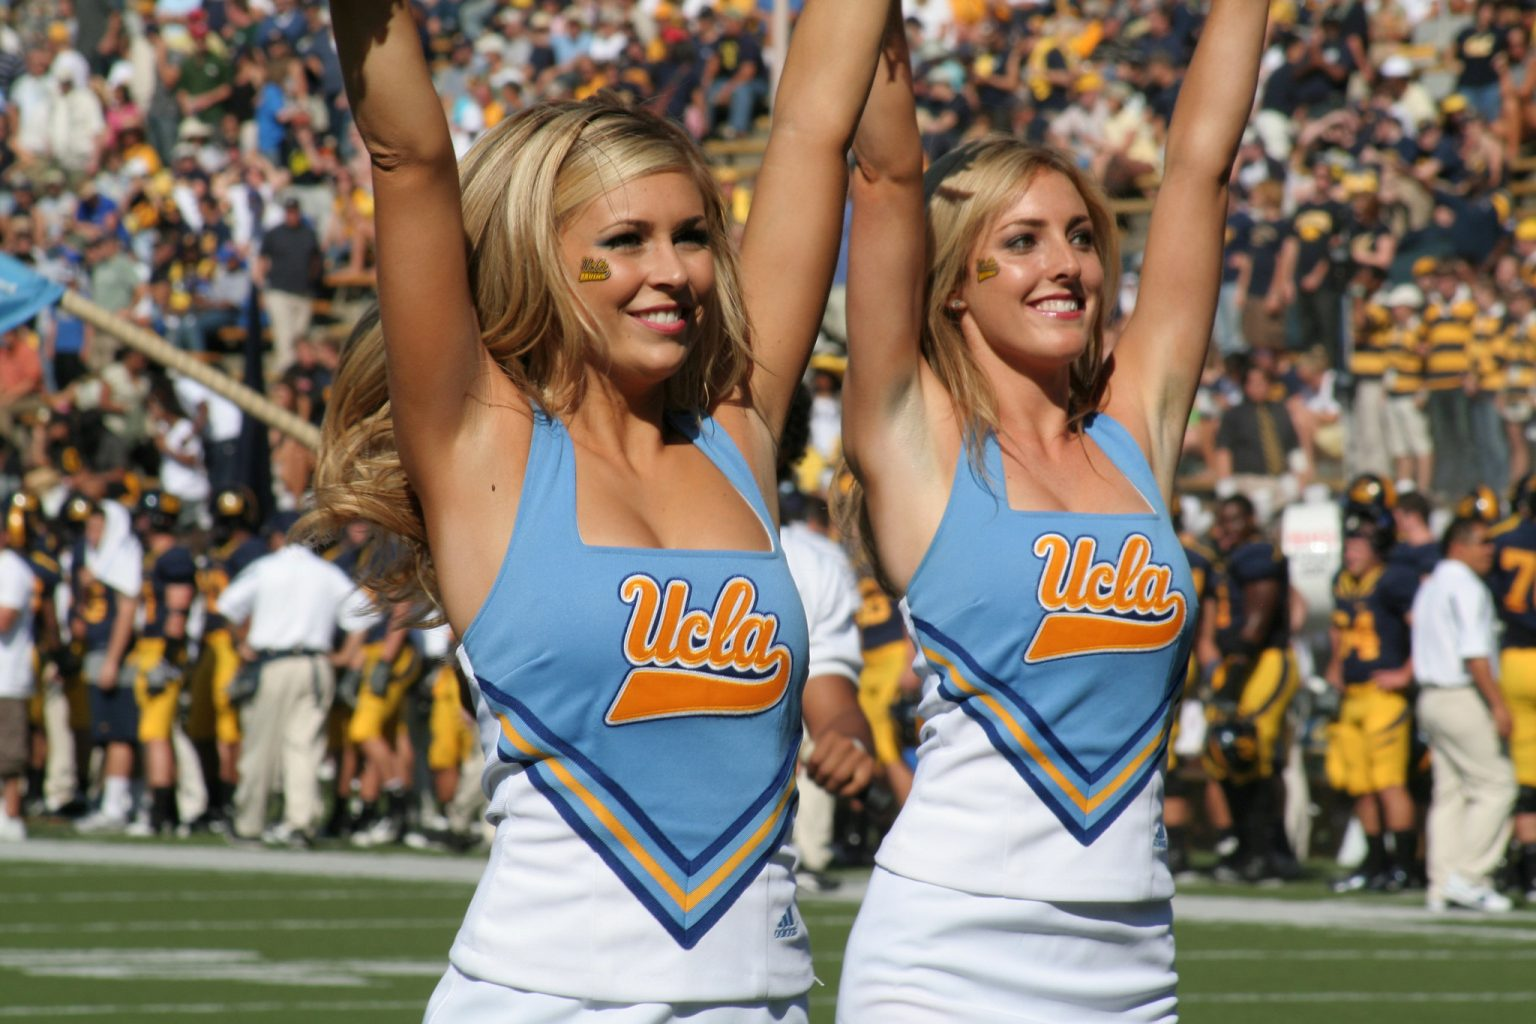 ucla cheerleaders football basketball